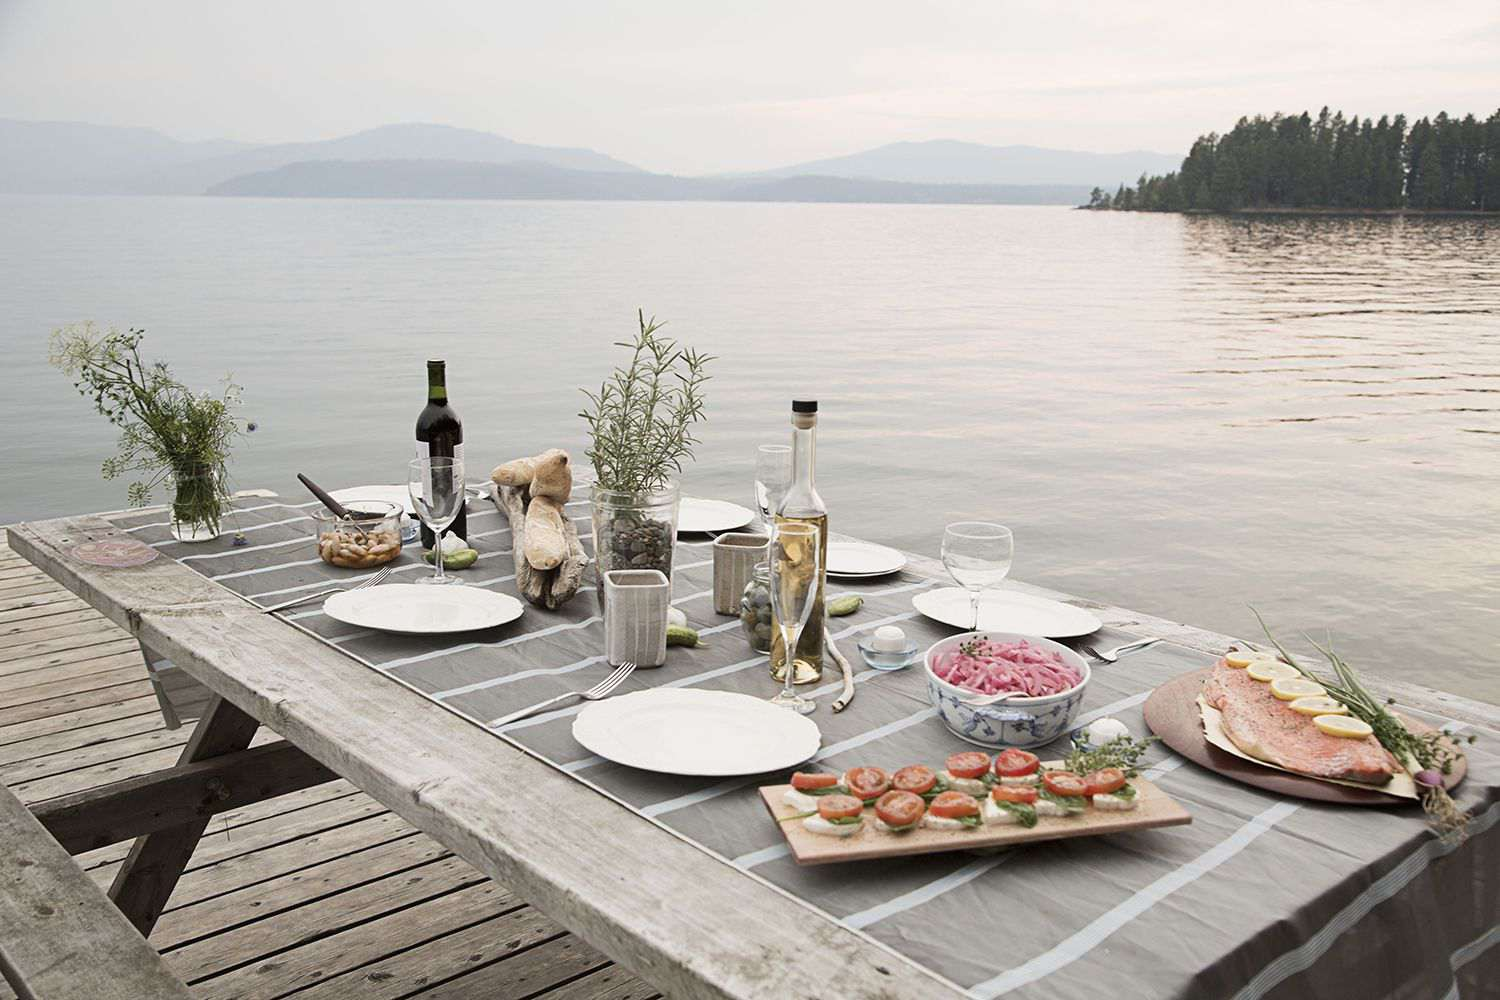 Plates of Food on Picnic Table Near Lake